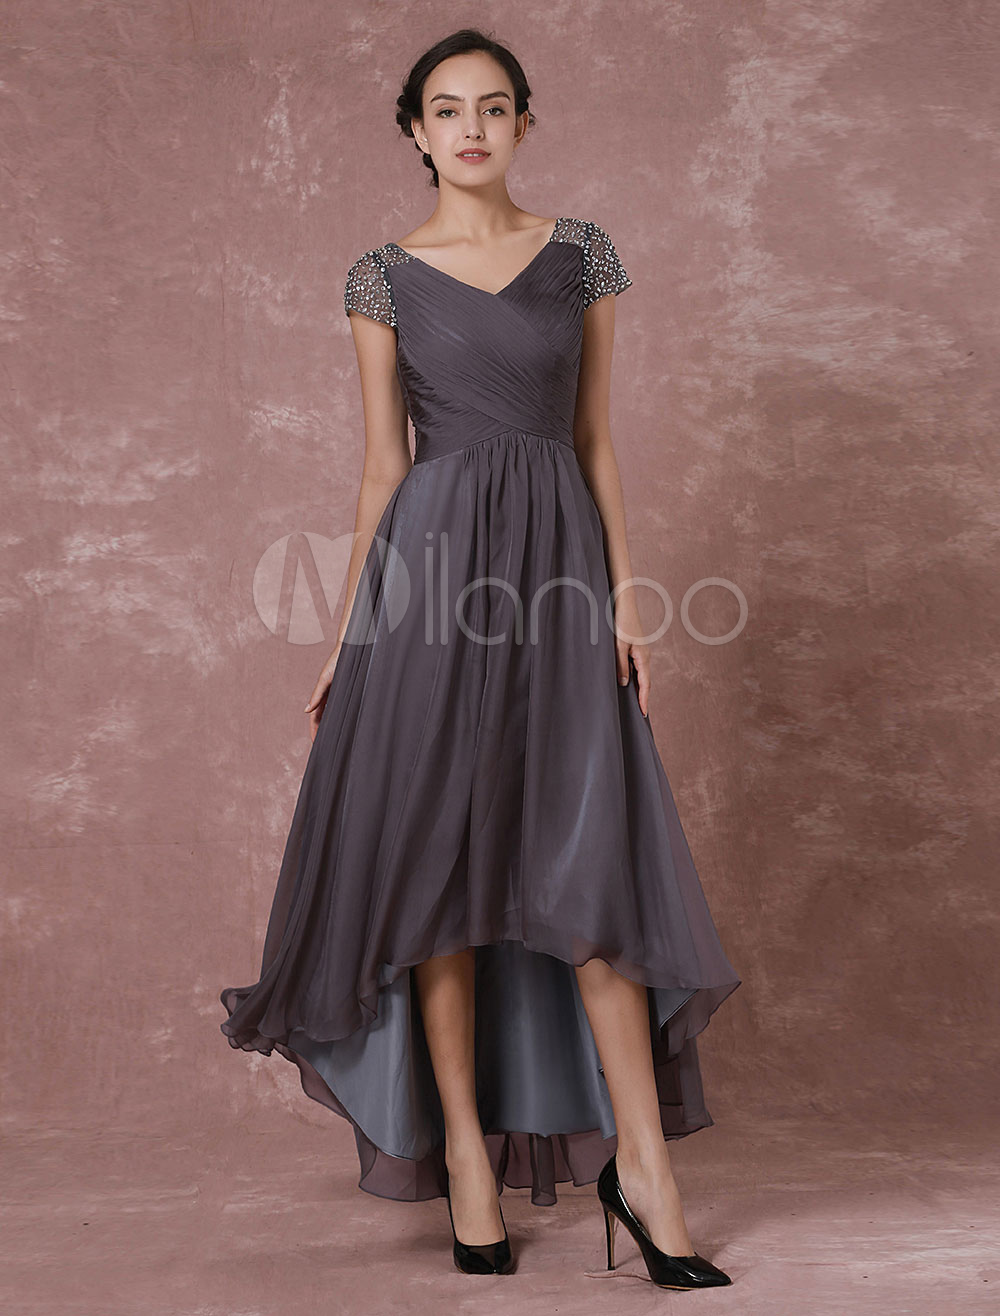 Chiffon Maxi Evening Dress Grey High Low Beading Backless V Neck Pleated Party Dress Wedding Guest Dress Wedding Guest Dress Milanoo Com,Casual Plus Size Wedding Dresses With Color